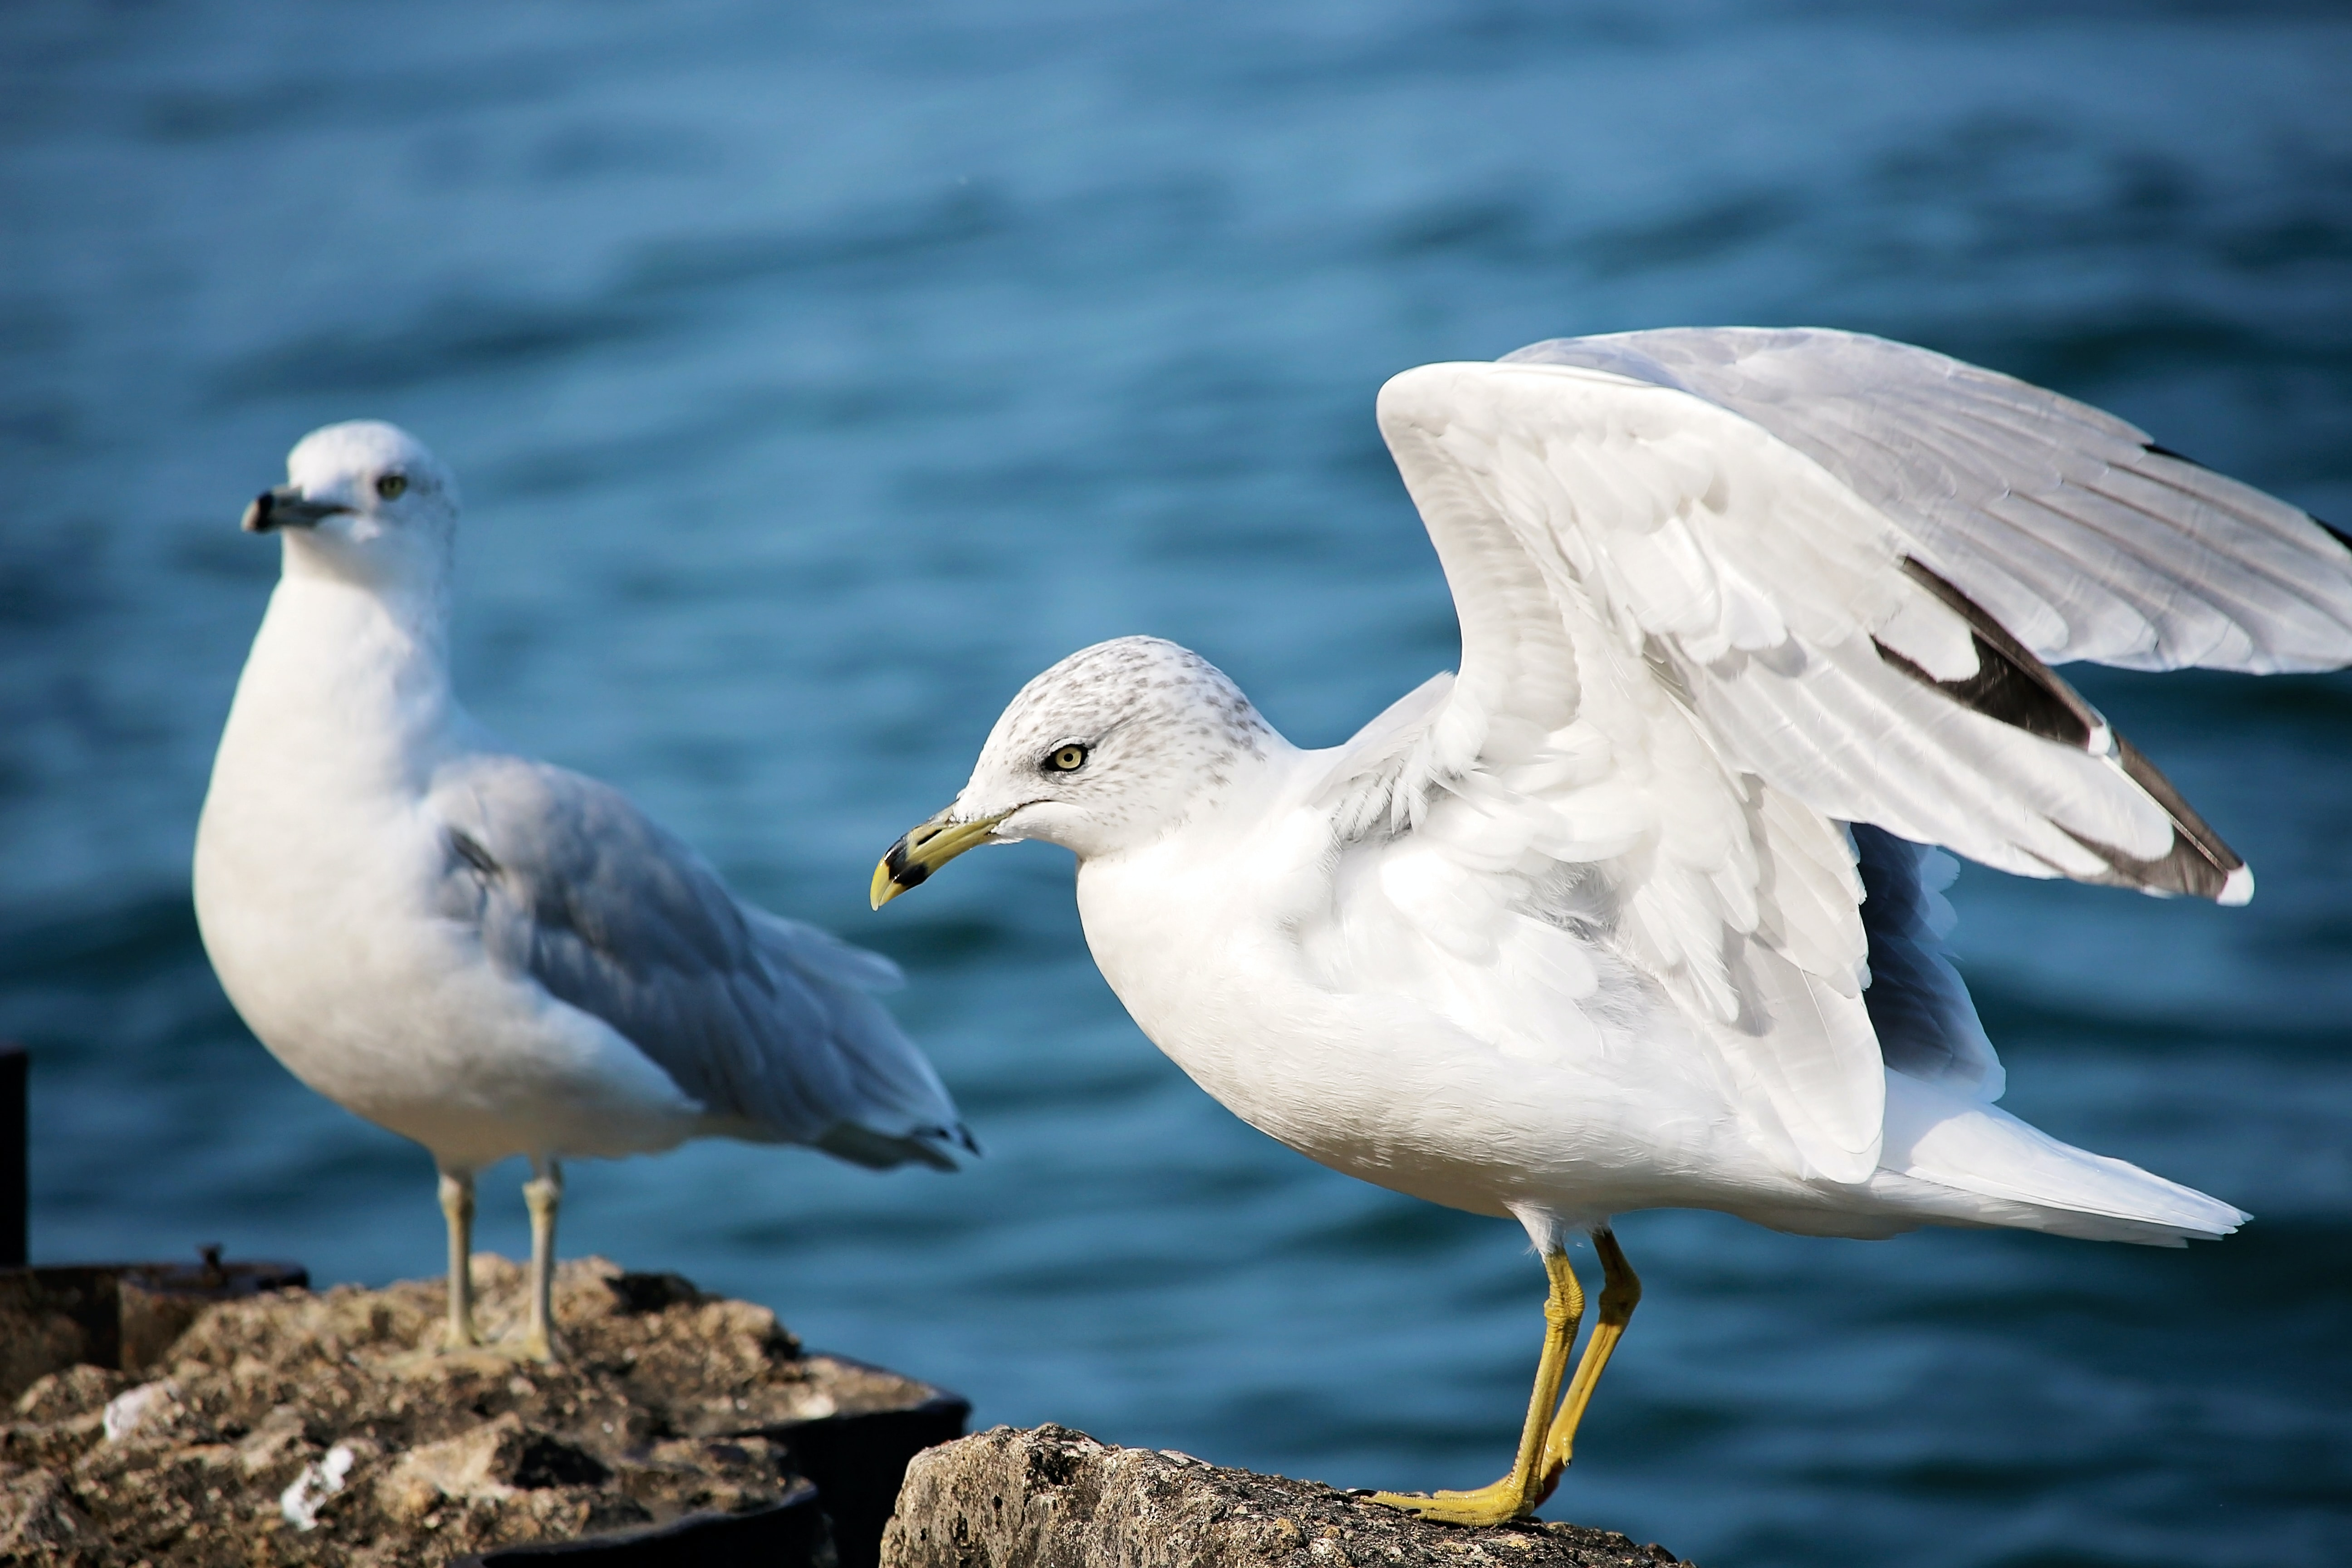 two white seagulls standing on gray stones